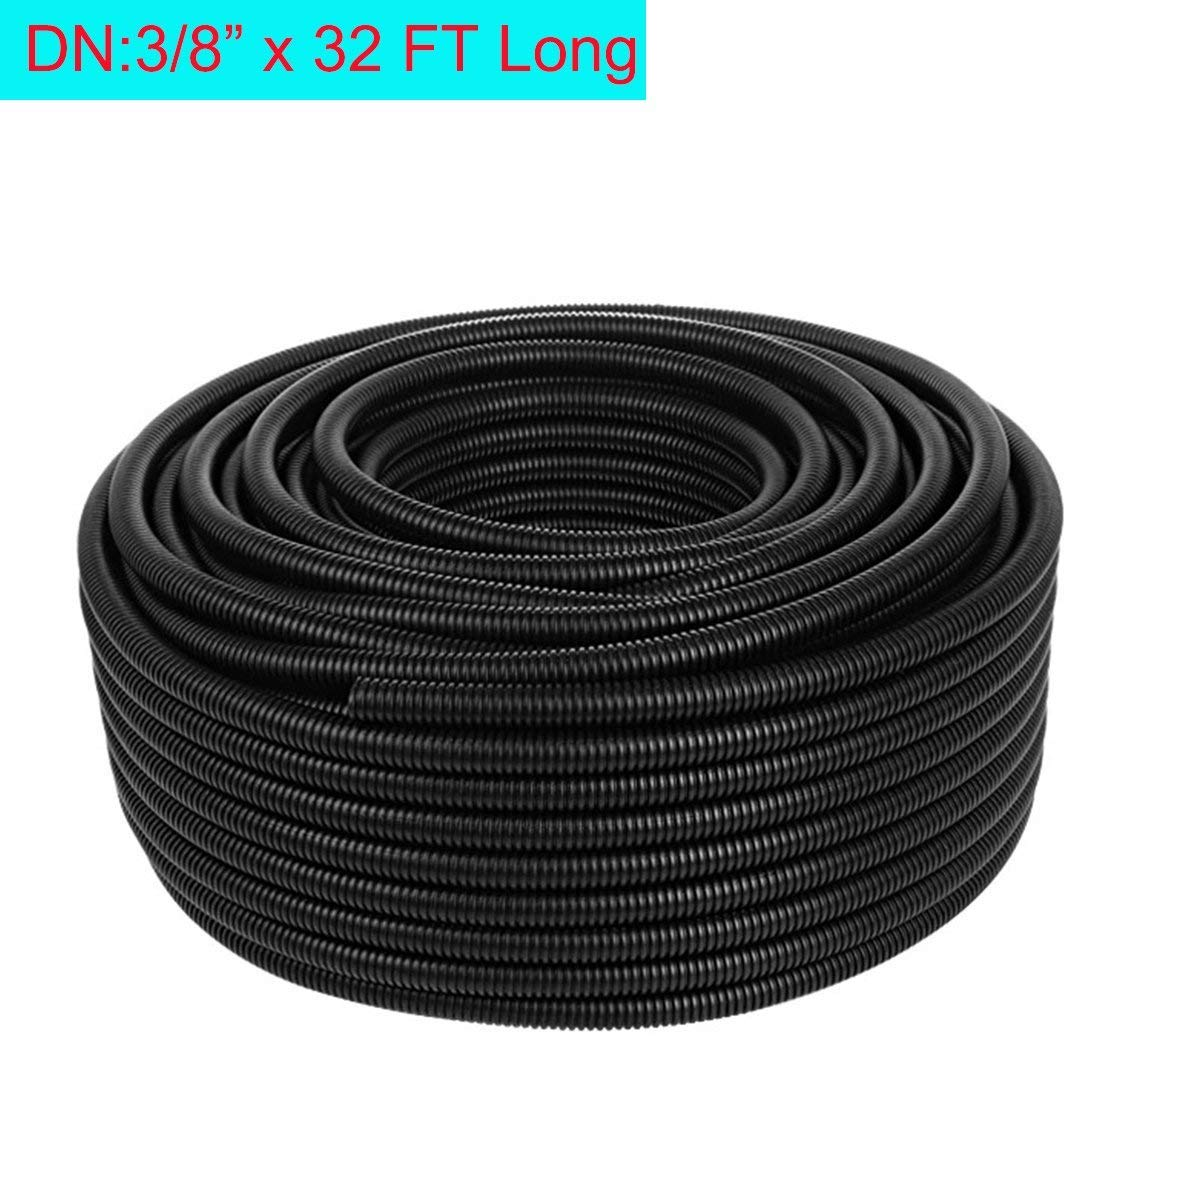 Welsoon Wire Loom,3/8 inch ID 32FT Length Split Loom Tubing Hose PP Wire Conduit Hose Cord Protector for Auto,Household,Workshop Machine